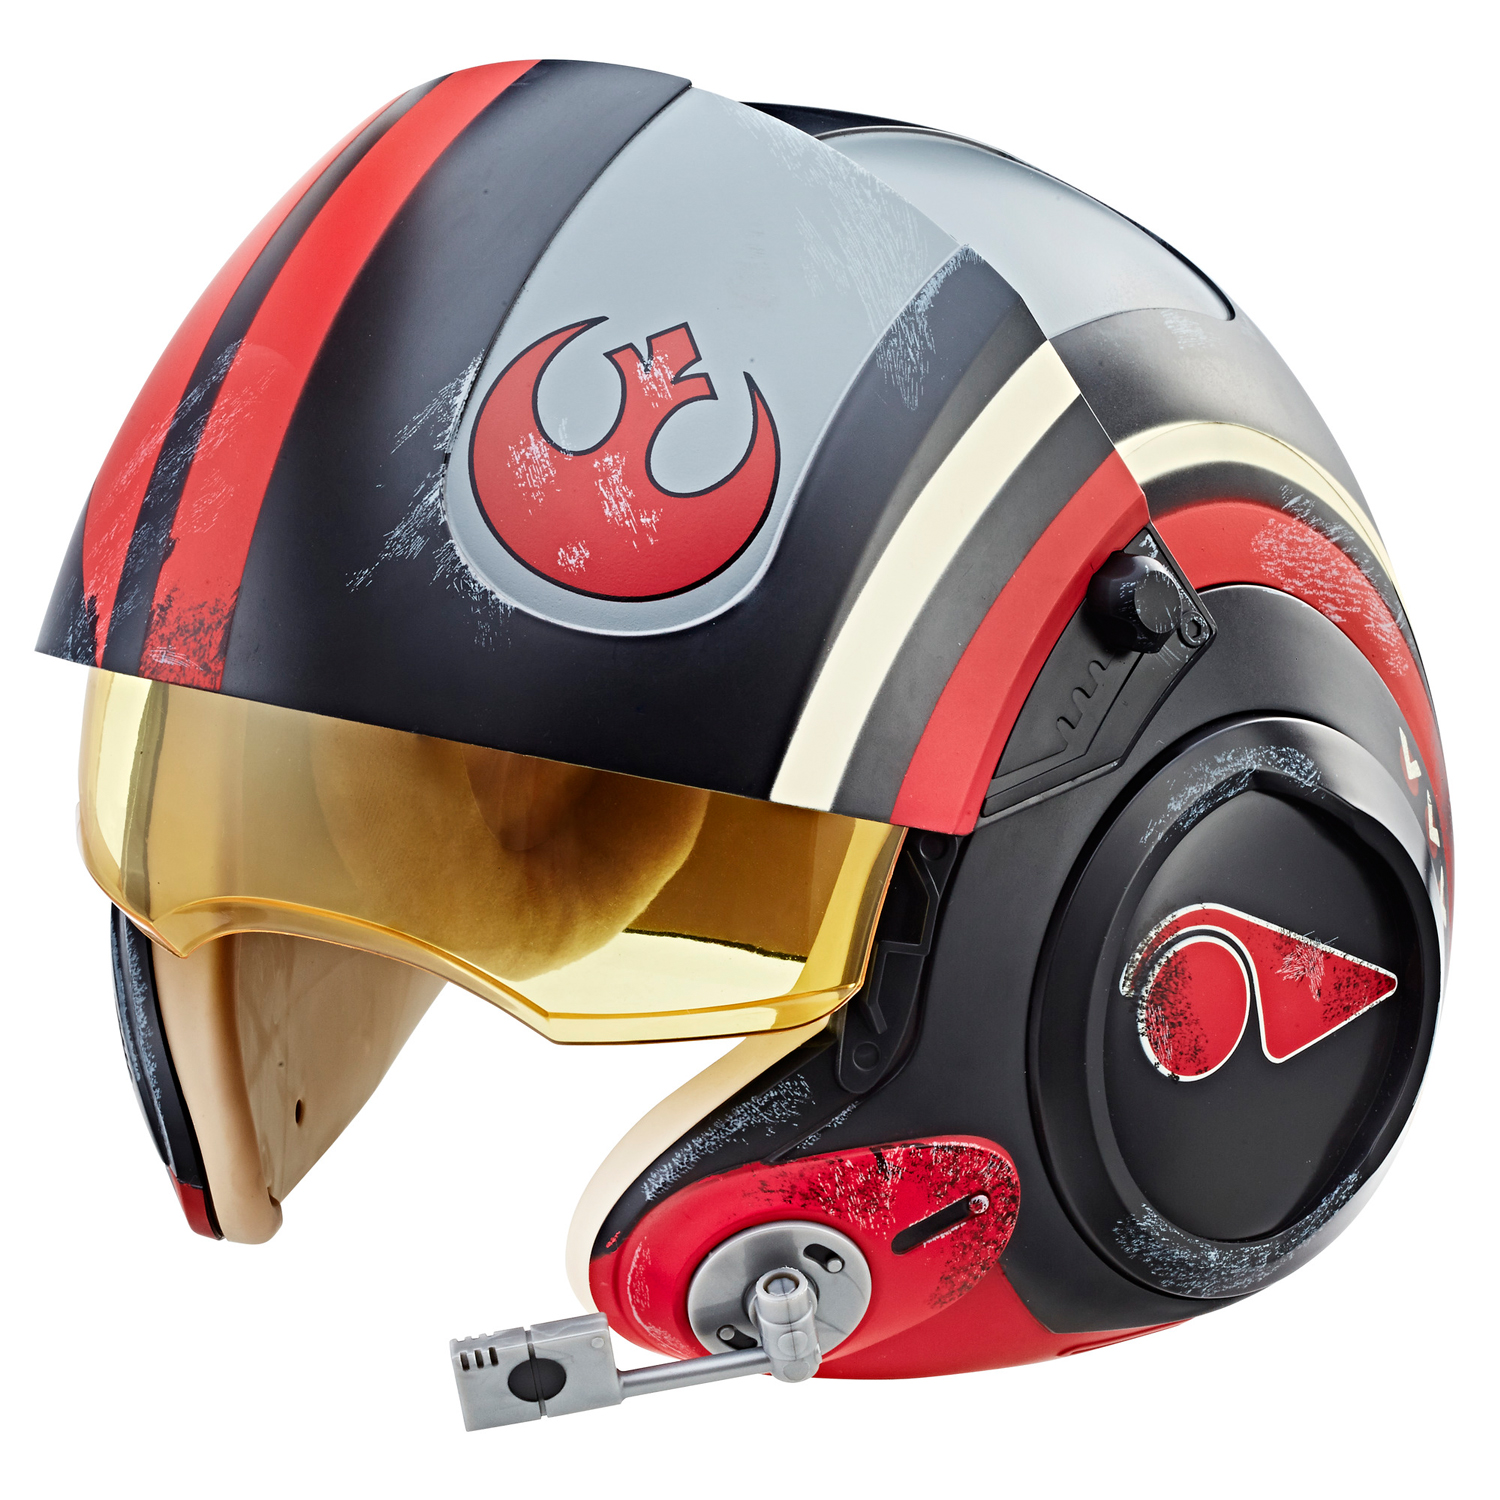 Star Wars The Black Series Poe Dameron Electronic X-Wing Pilot Helmet by Hasbro